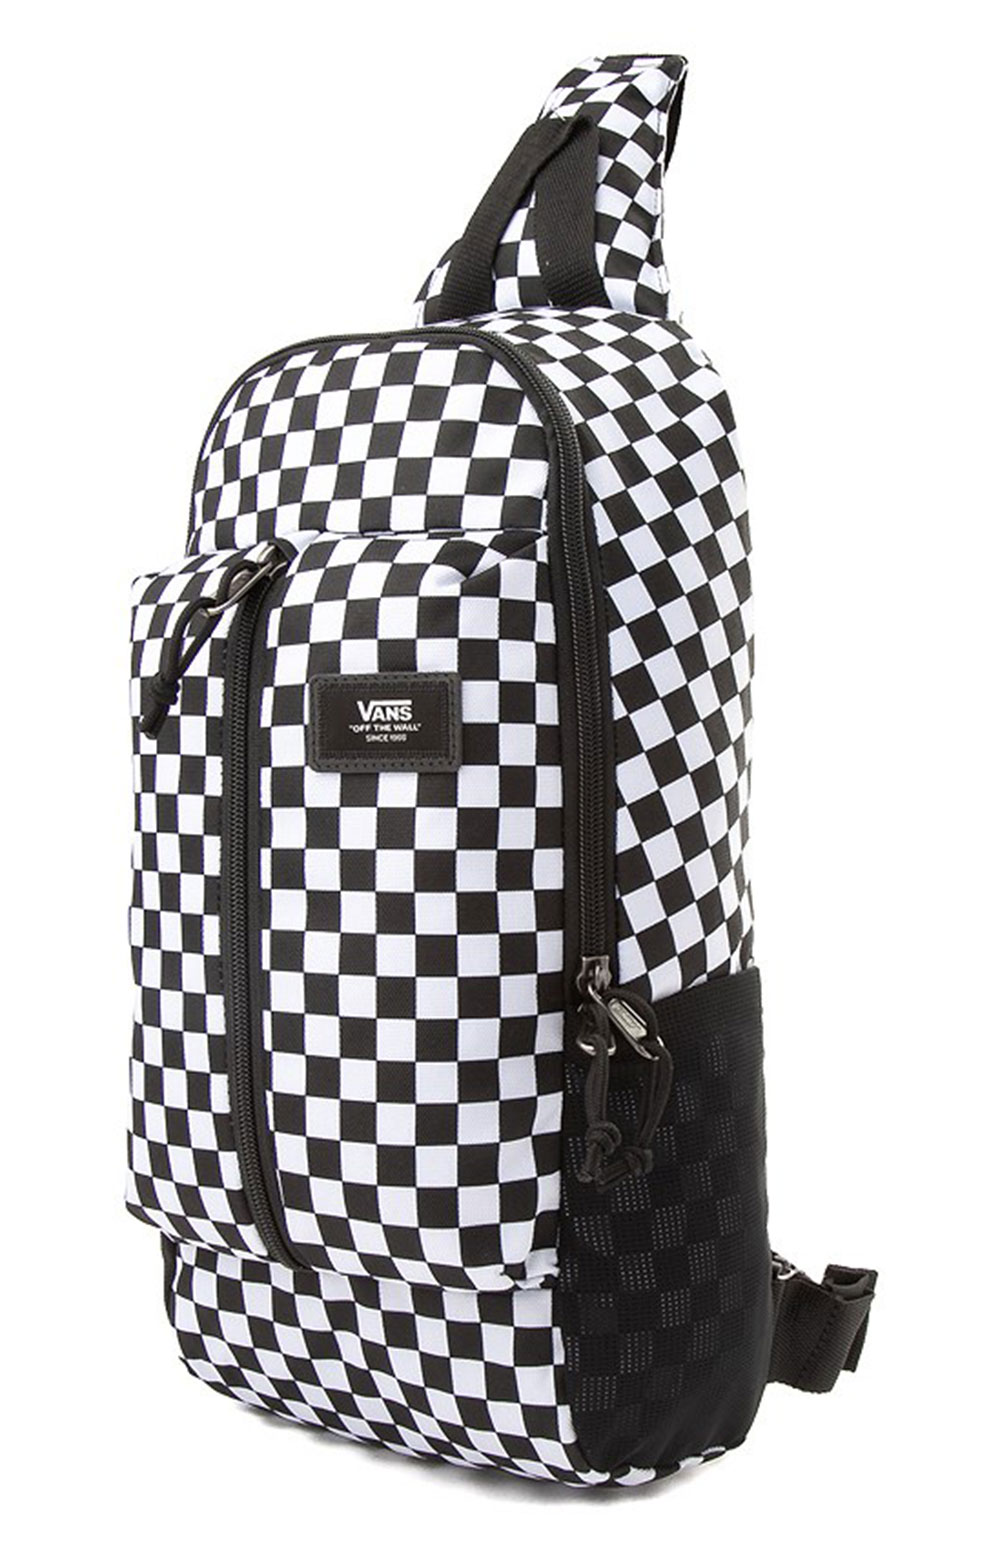 Warp Sling Bag - Black/White 3